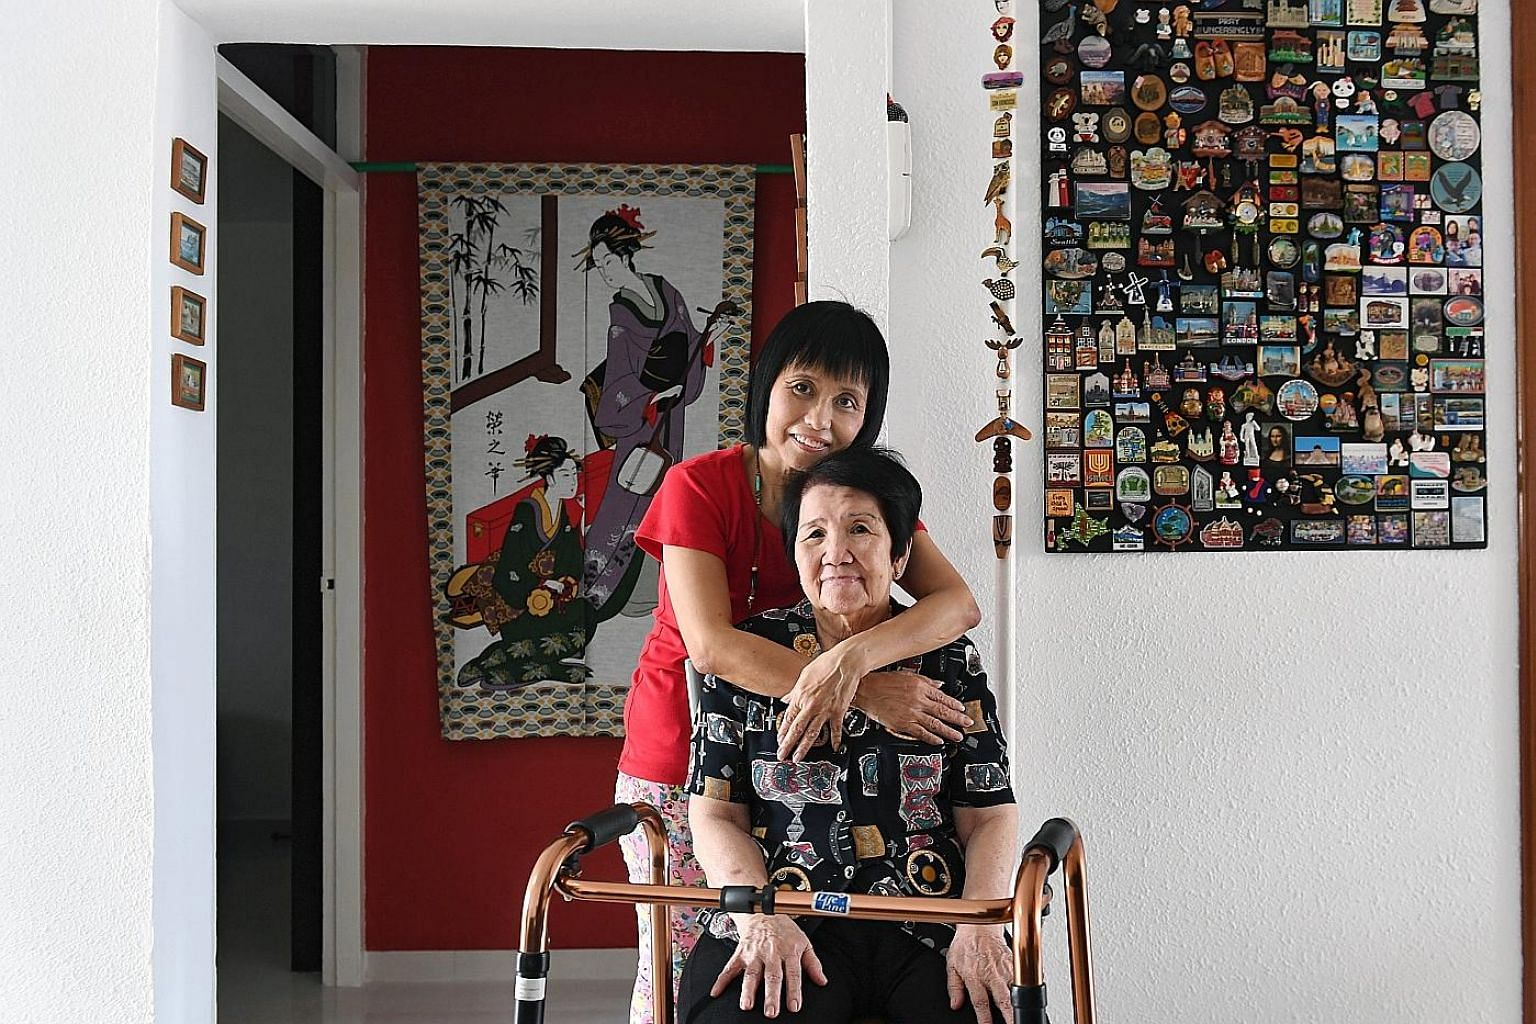 (Above) Ms Janet Koh with her mother, Madam Ng Sook Cheng, whom she has been caring for full-time since 2010. Having cared for her father-in-law and husband, who have both died, gave Madam Liaw Lay Kian (left) the desire to work in a hospice to help